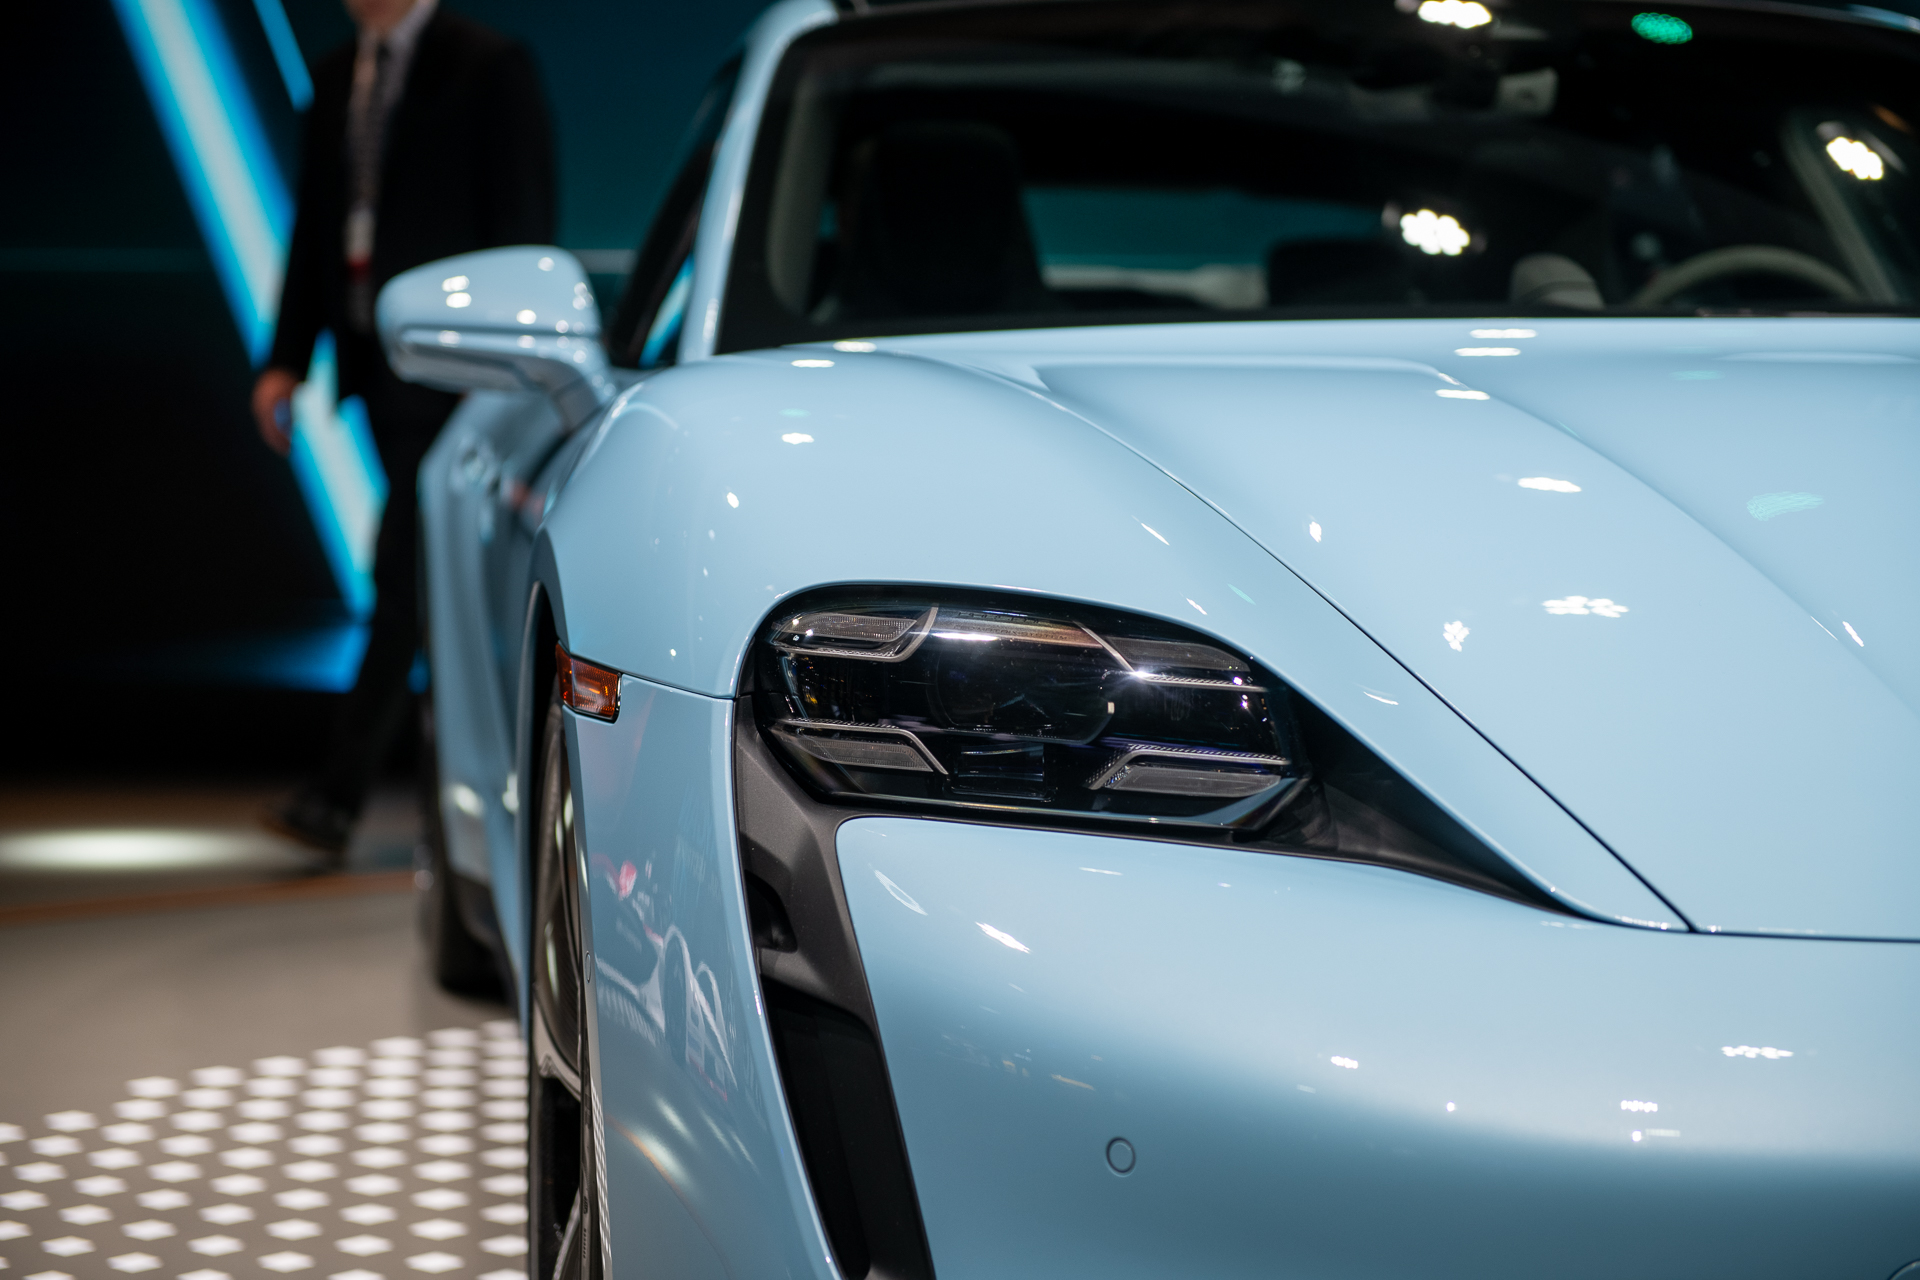 Germany's solar-powered city car, Taycan and Model X crumpled, cheaper EV batteries